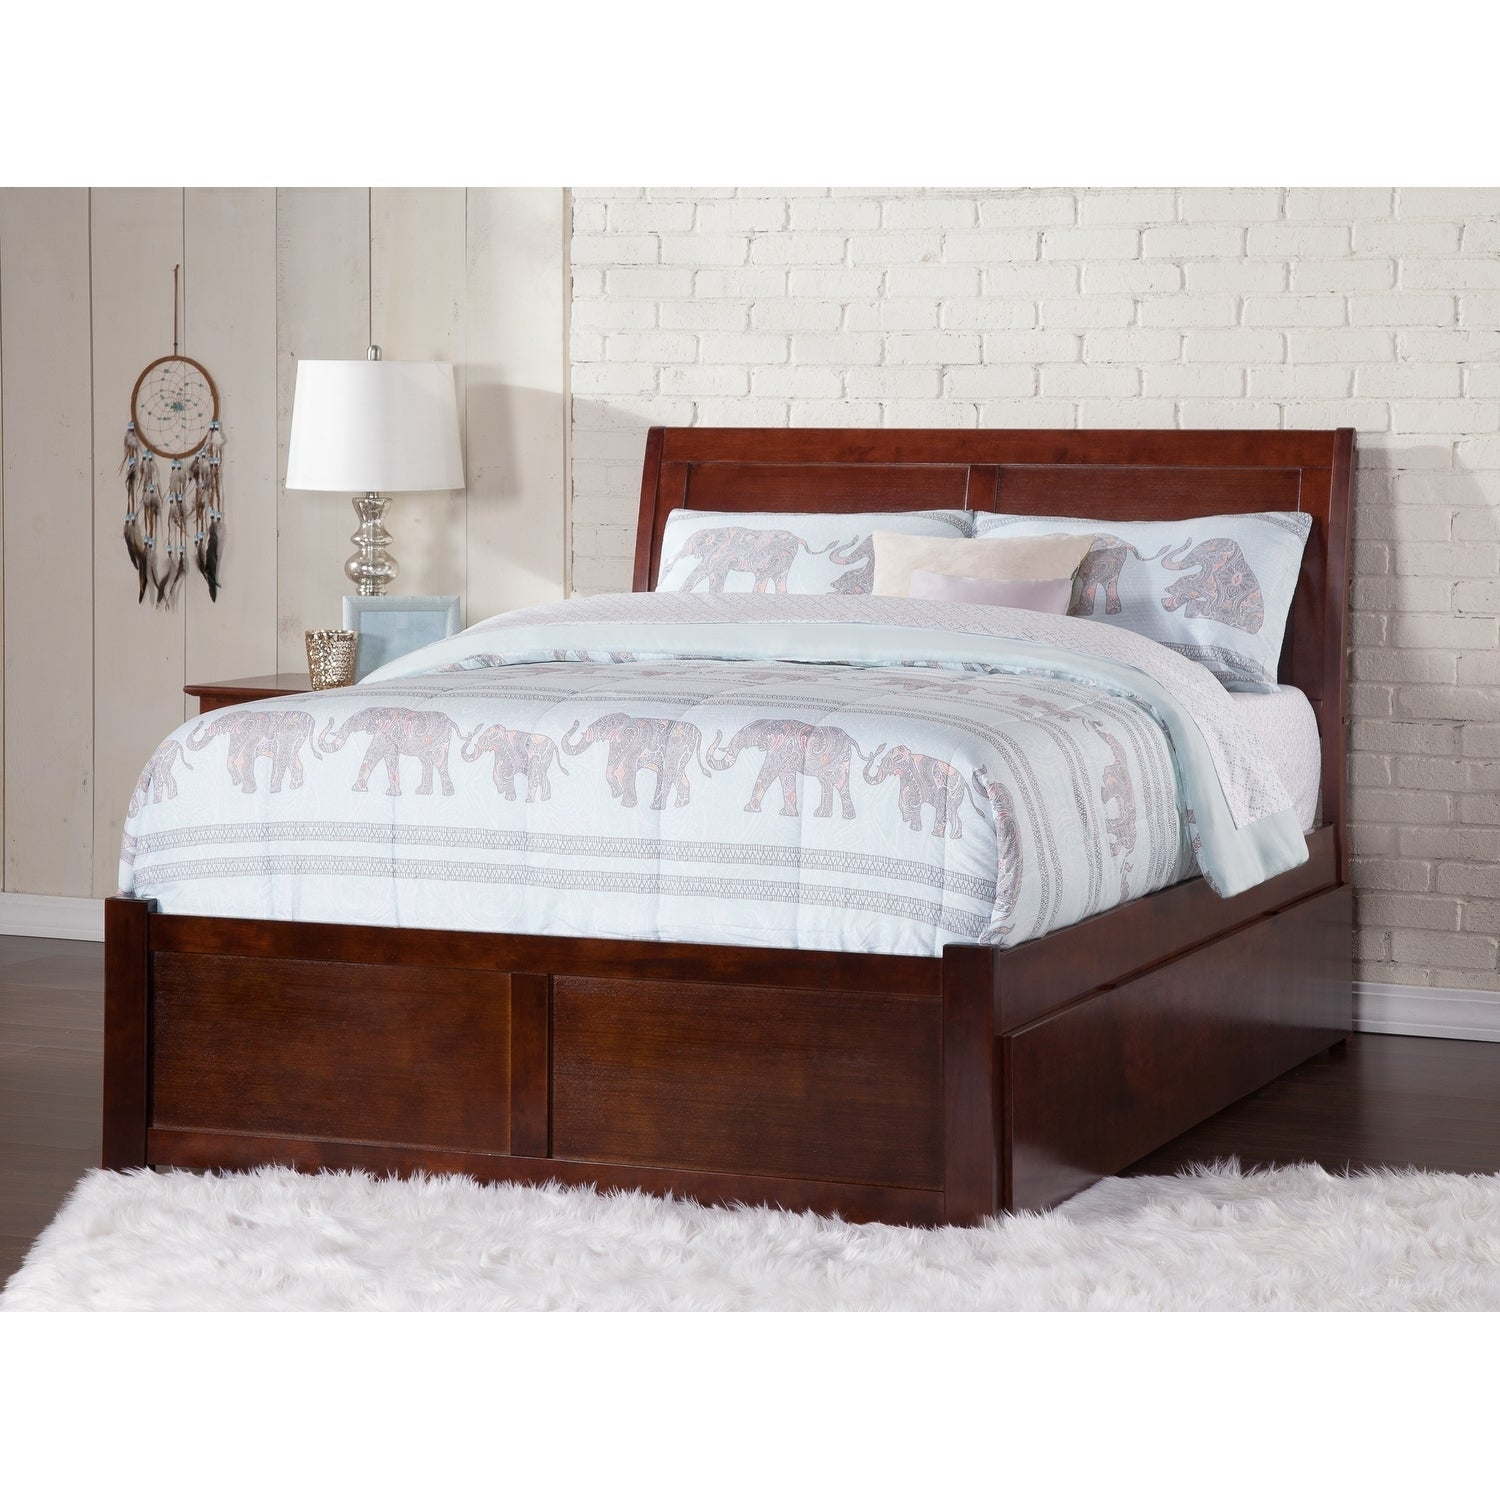 Shop Portland Walnut Brown Panel Full Size Bed With Trundle Bed